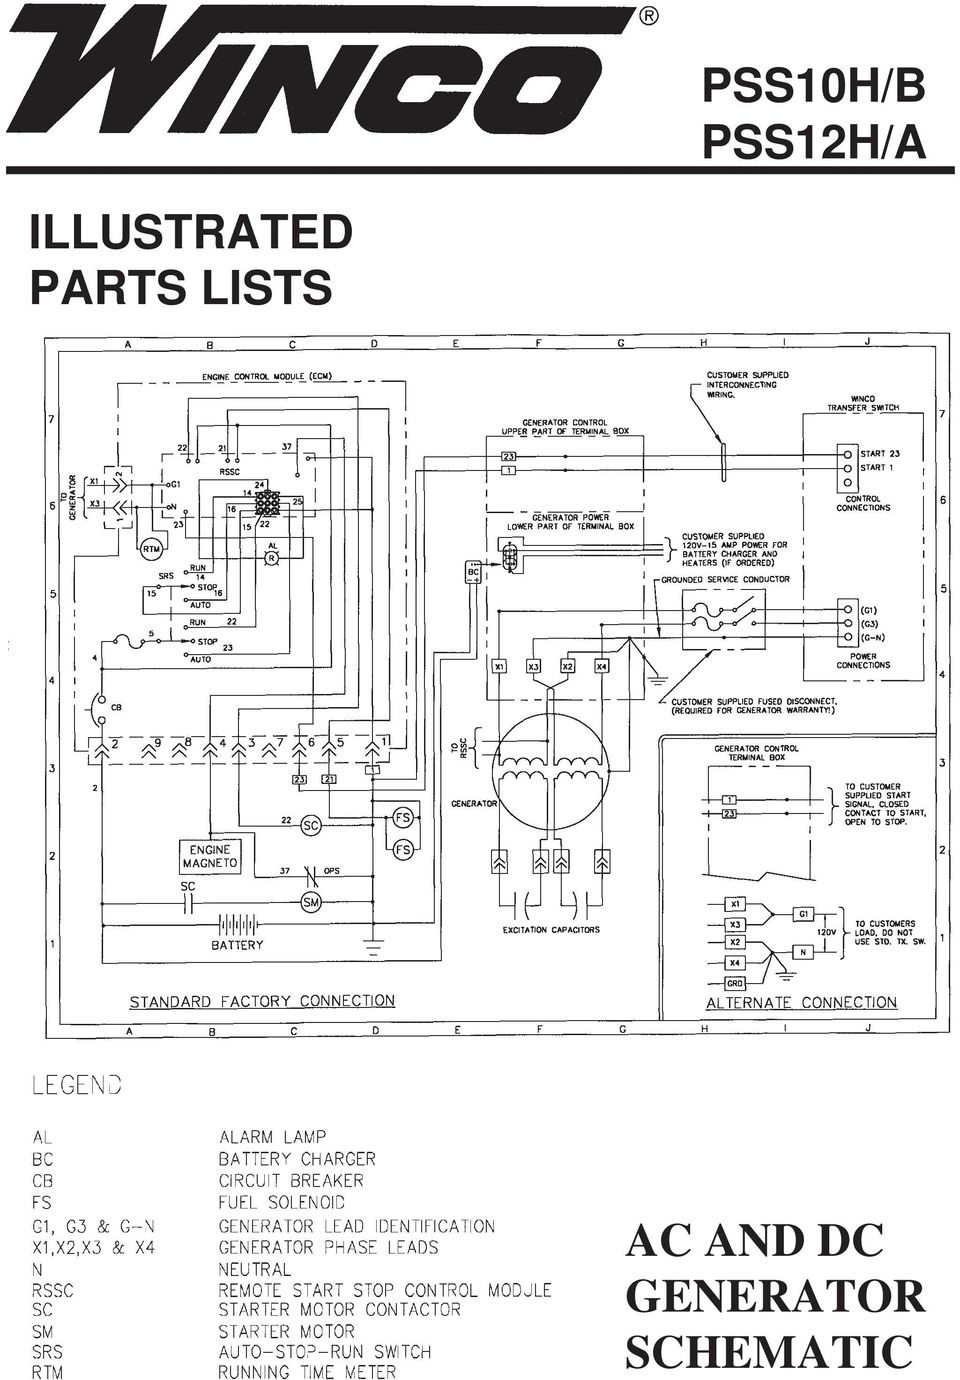 hight resolution of spacer honda outboard lower unit diagram best wiring library2 engine generator assembly ref description qty pss10